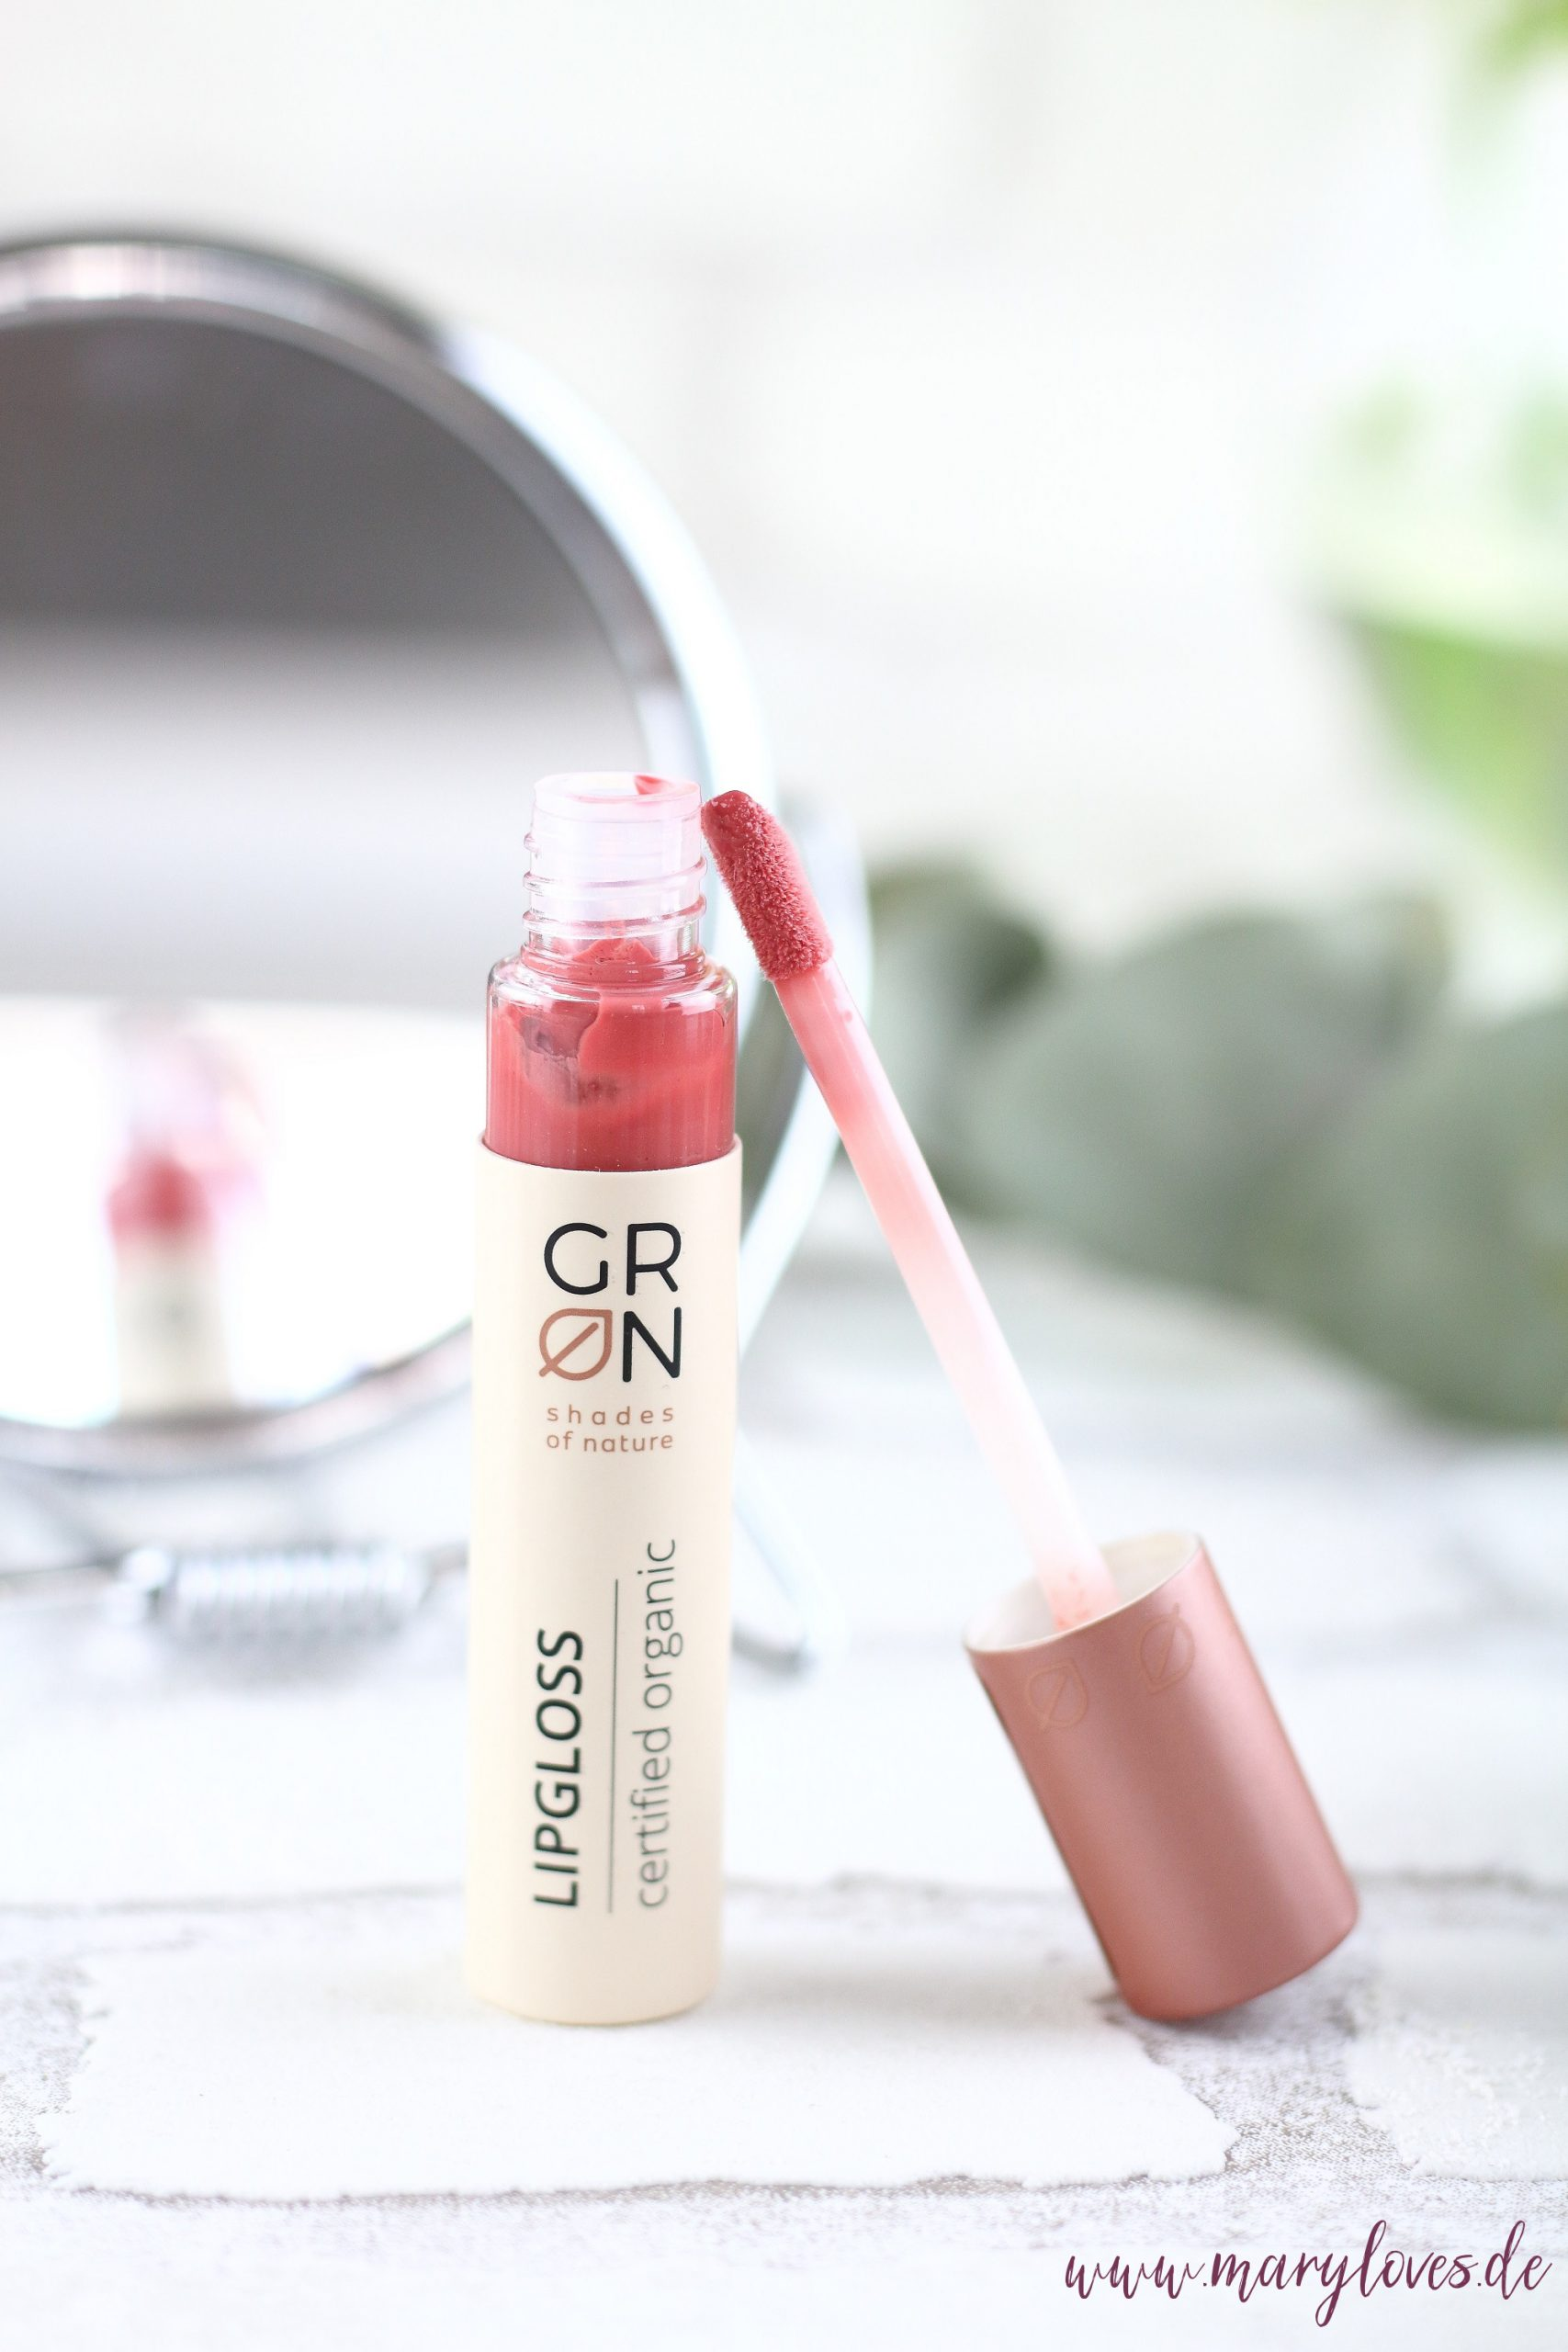 GRN - shades of nature Pflegender Lipgloss peach